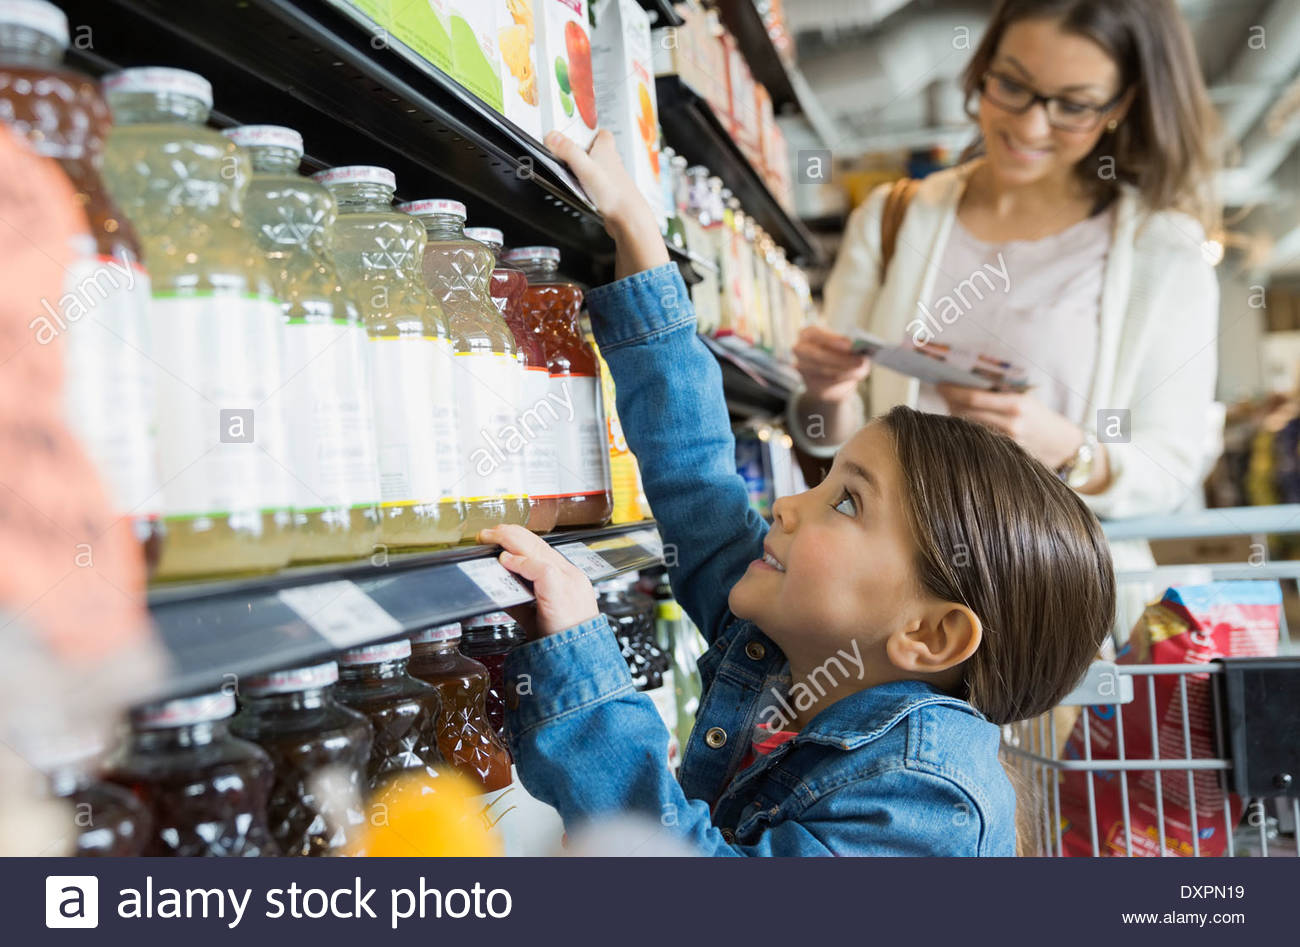 Girl reaching for juice on shelf in market - Stock Image